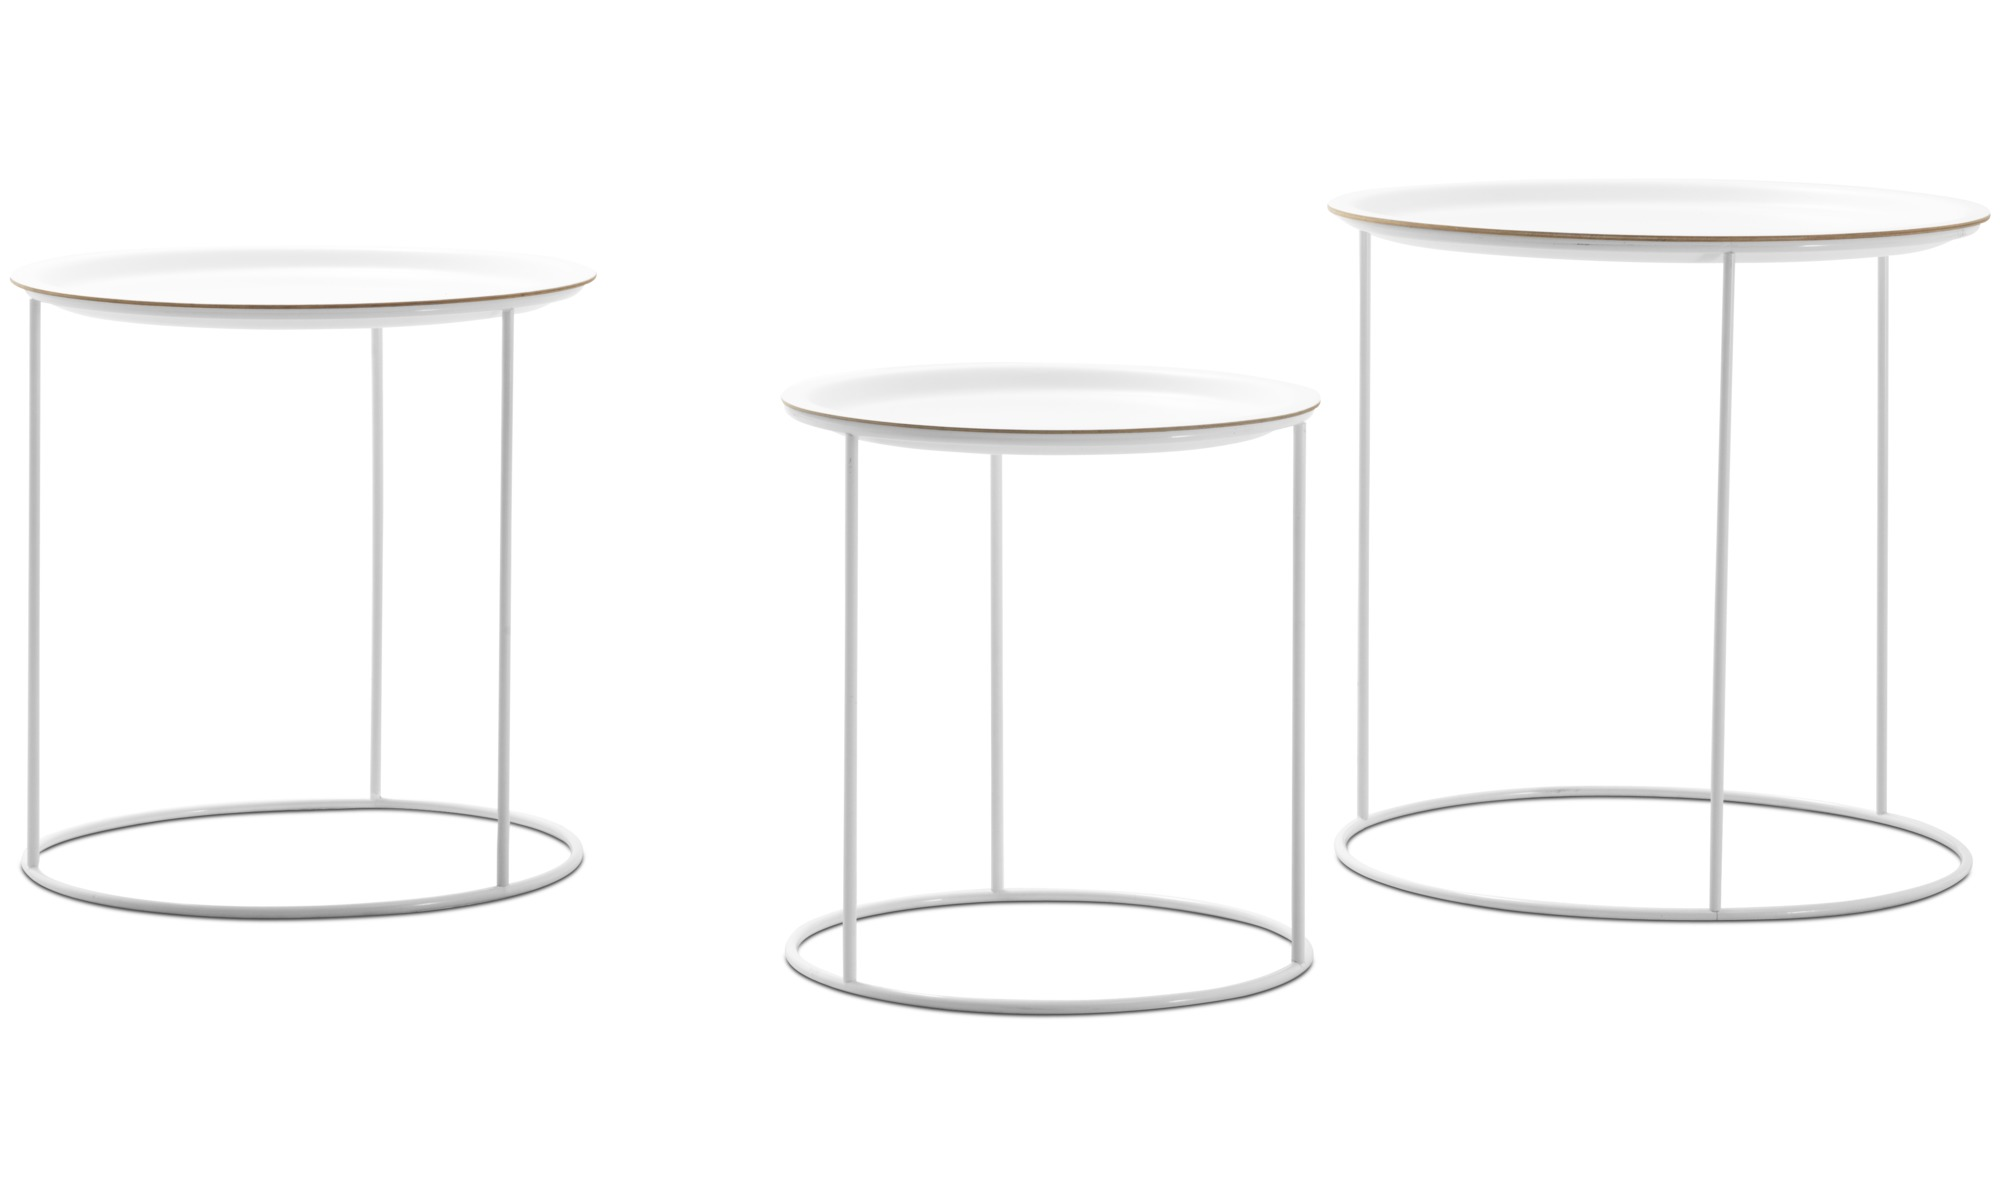 Small furniture - Cartagena nest of tables - round - White - Lacquered